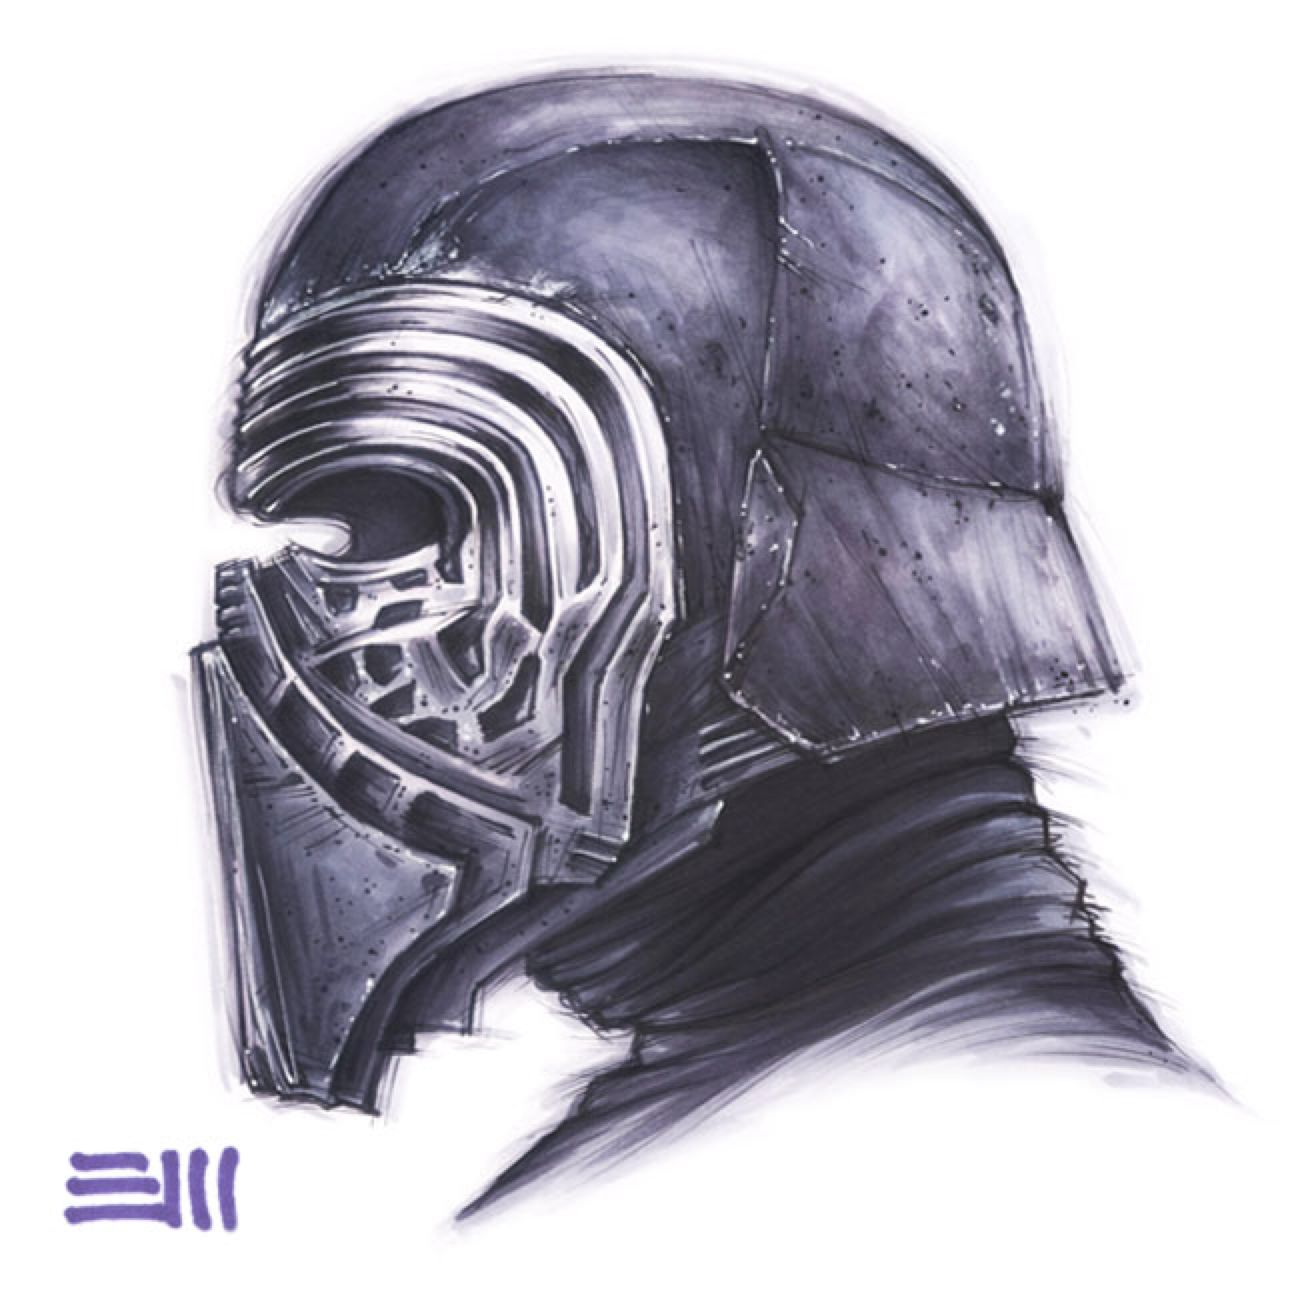 1296x1296 Kylo Ren Portrait Study By Erik Maell On @ Star Wars